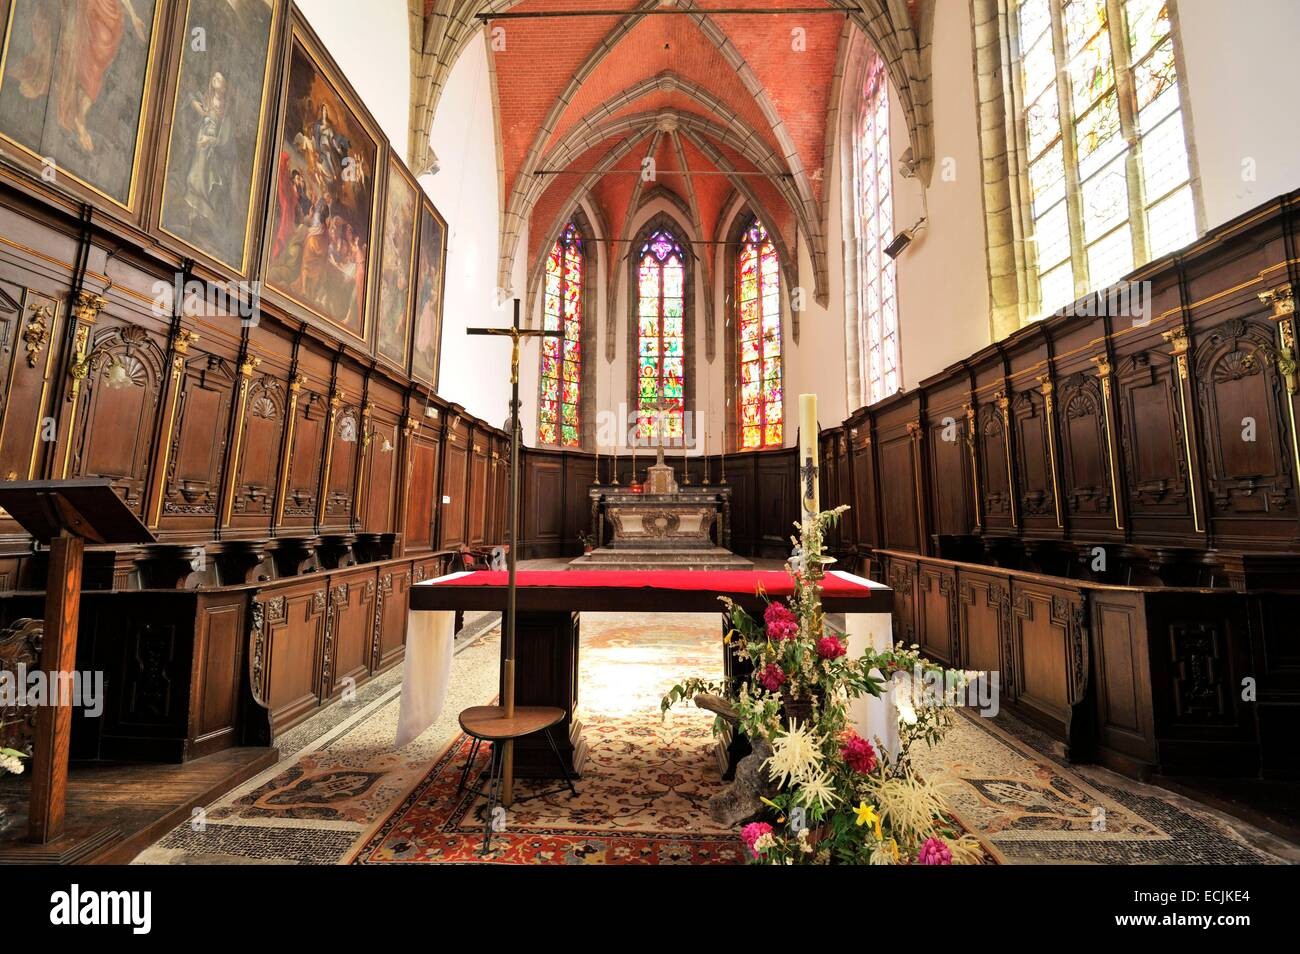 France, Nord, Solre le Chateau, Altar of the Saint Pierre Saint Paul's church - Stock Image